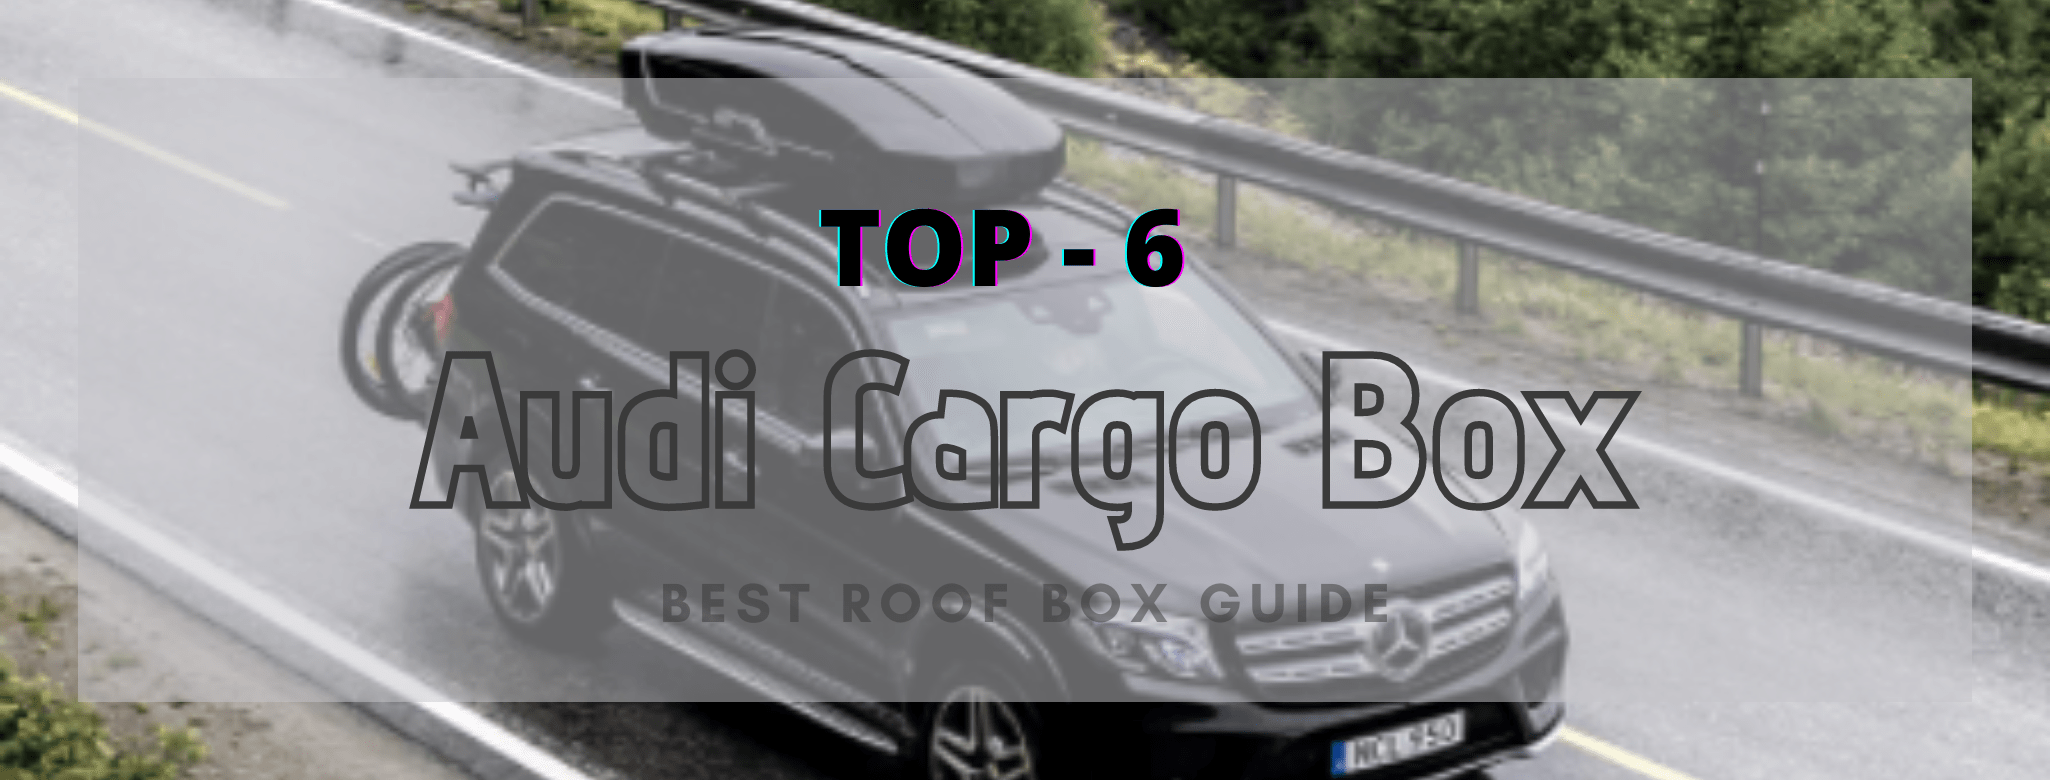 👉 Top 6 Audi Cargo Box | How to choose Audi Roof Cargo Box? ⚠️